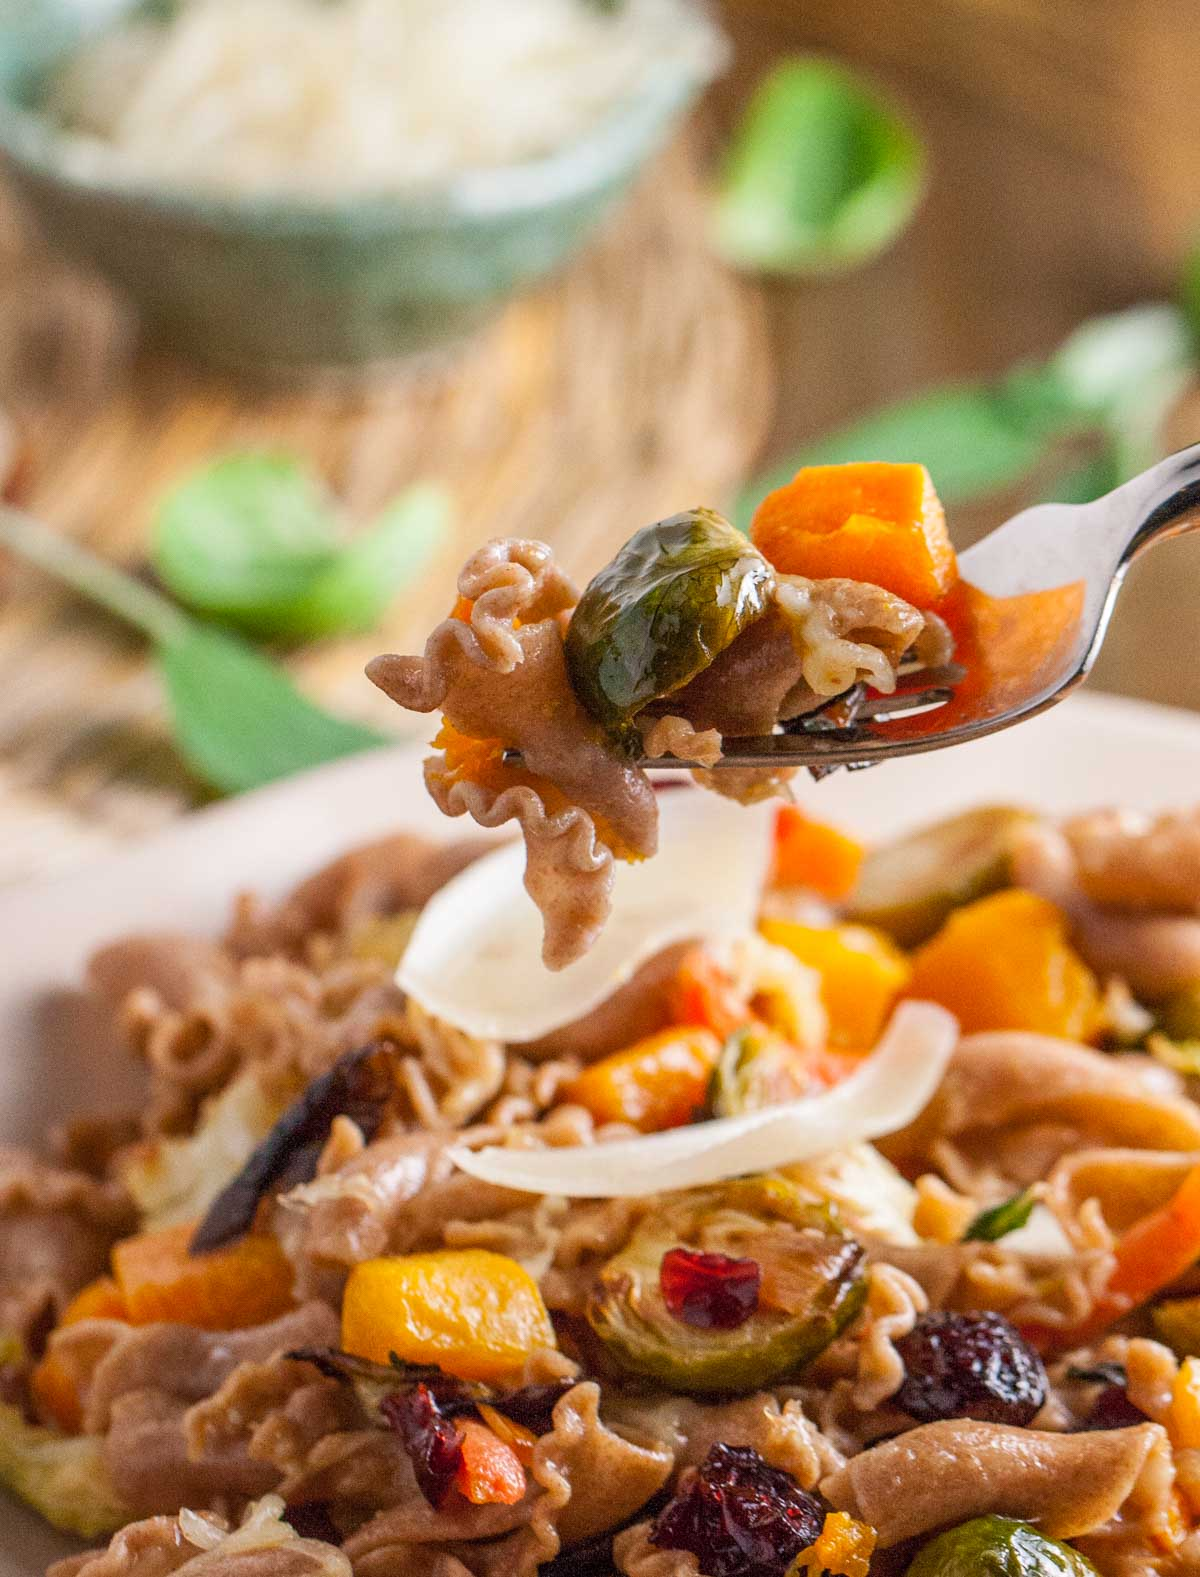 Roasted Vegetables with Sprouted Grains Pasta | WorldofPastabilities.com |Roasted Vegetables taste so delicous with our Lemon Brown Butter Sauce and Sprouted Grains Pasta!